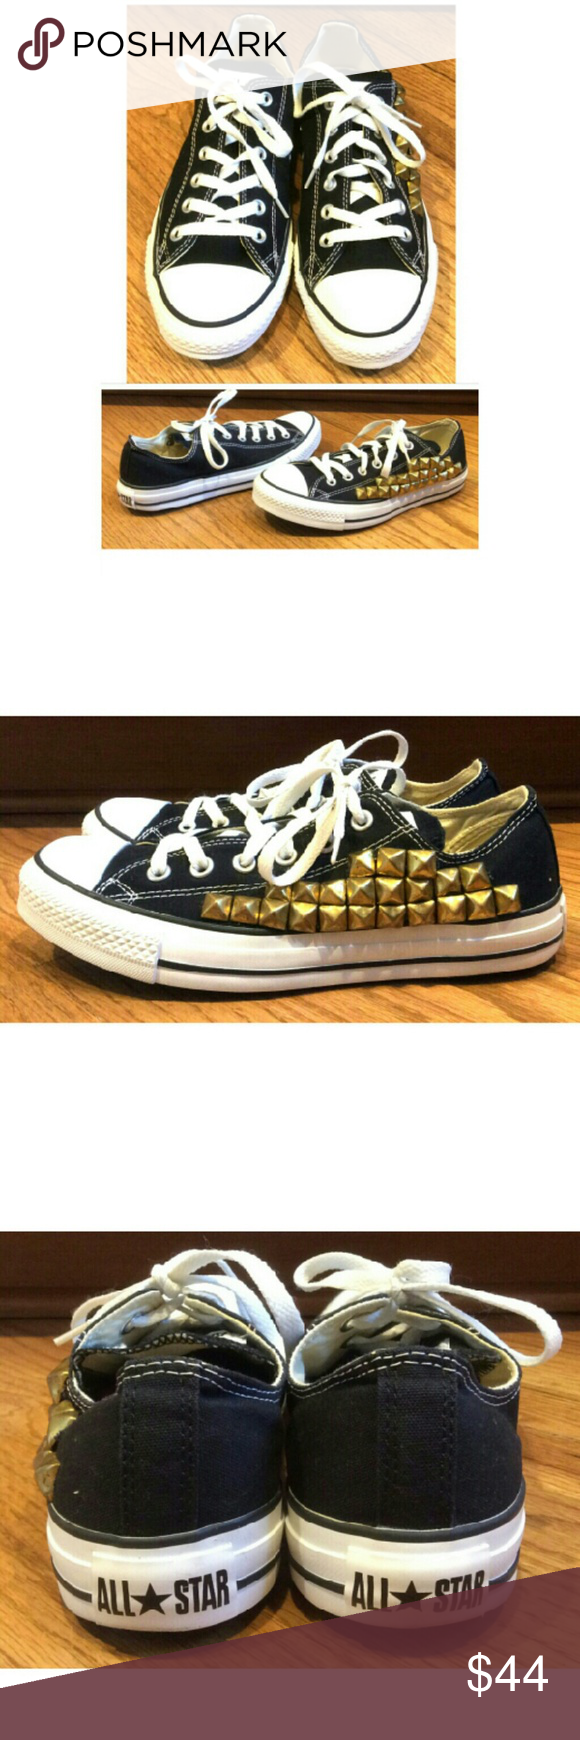 ☆SALE! CONVERSE studded low tops These classic Converse decorated low tops are perfect to wear with any outfit year round! Classic original black canvas Converse with a twist, gold studs decorate the left shoe. In like NEW condition, NO DAMAGES, UNUSED. Dress up or down with jeans, shorts or dresses. Grab yours! Converse Shoes Sneakers